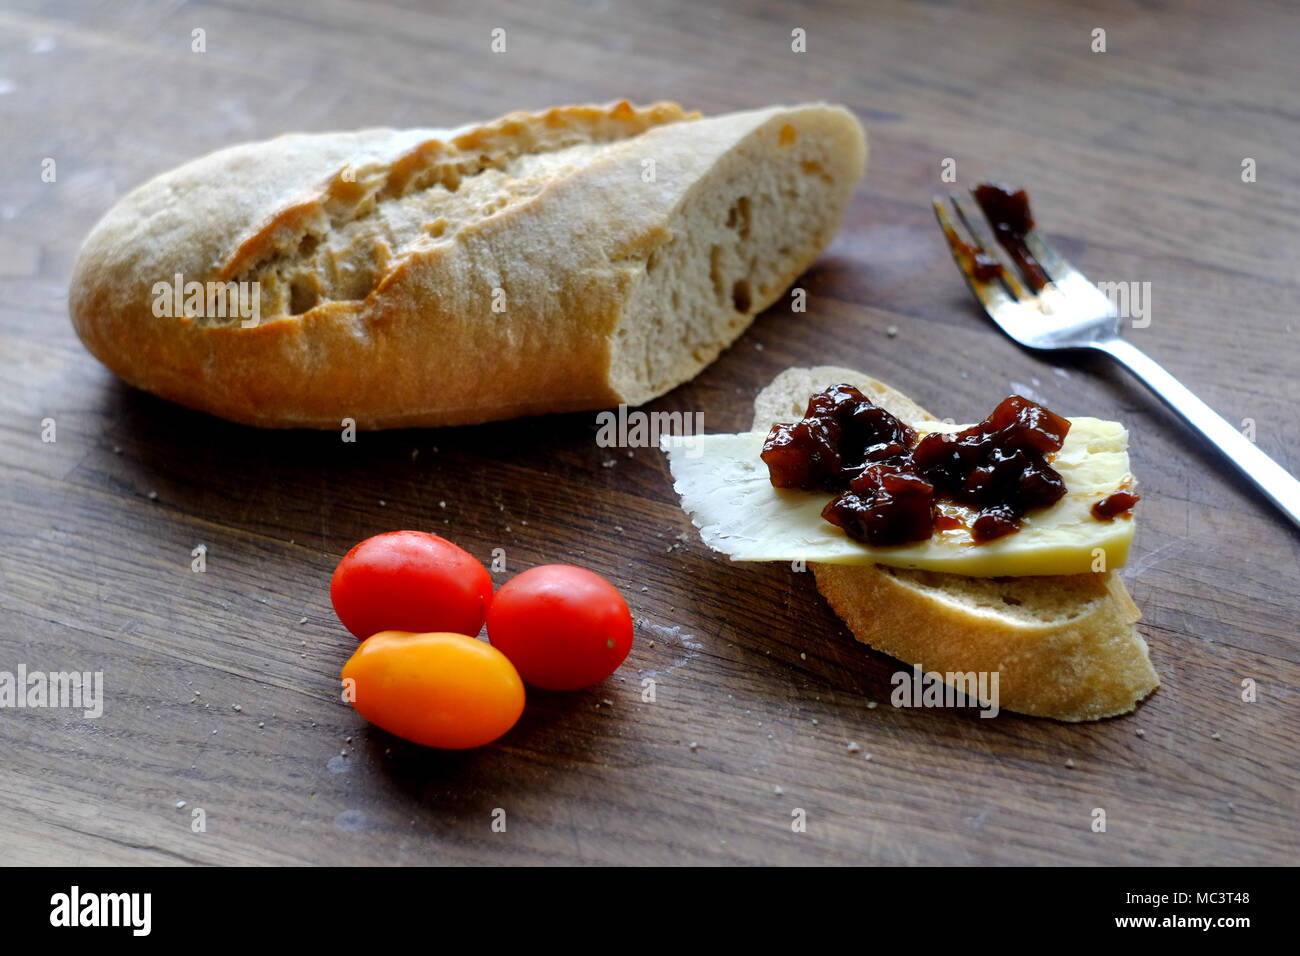 Cheese and pickle on rustic bread - Stock Image